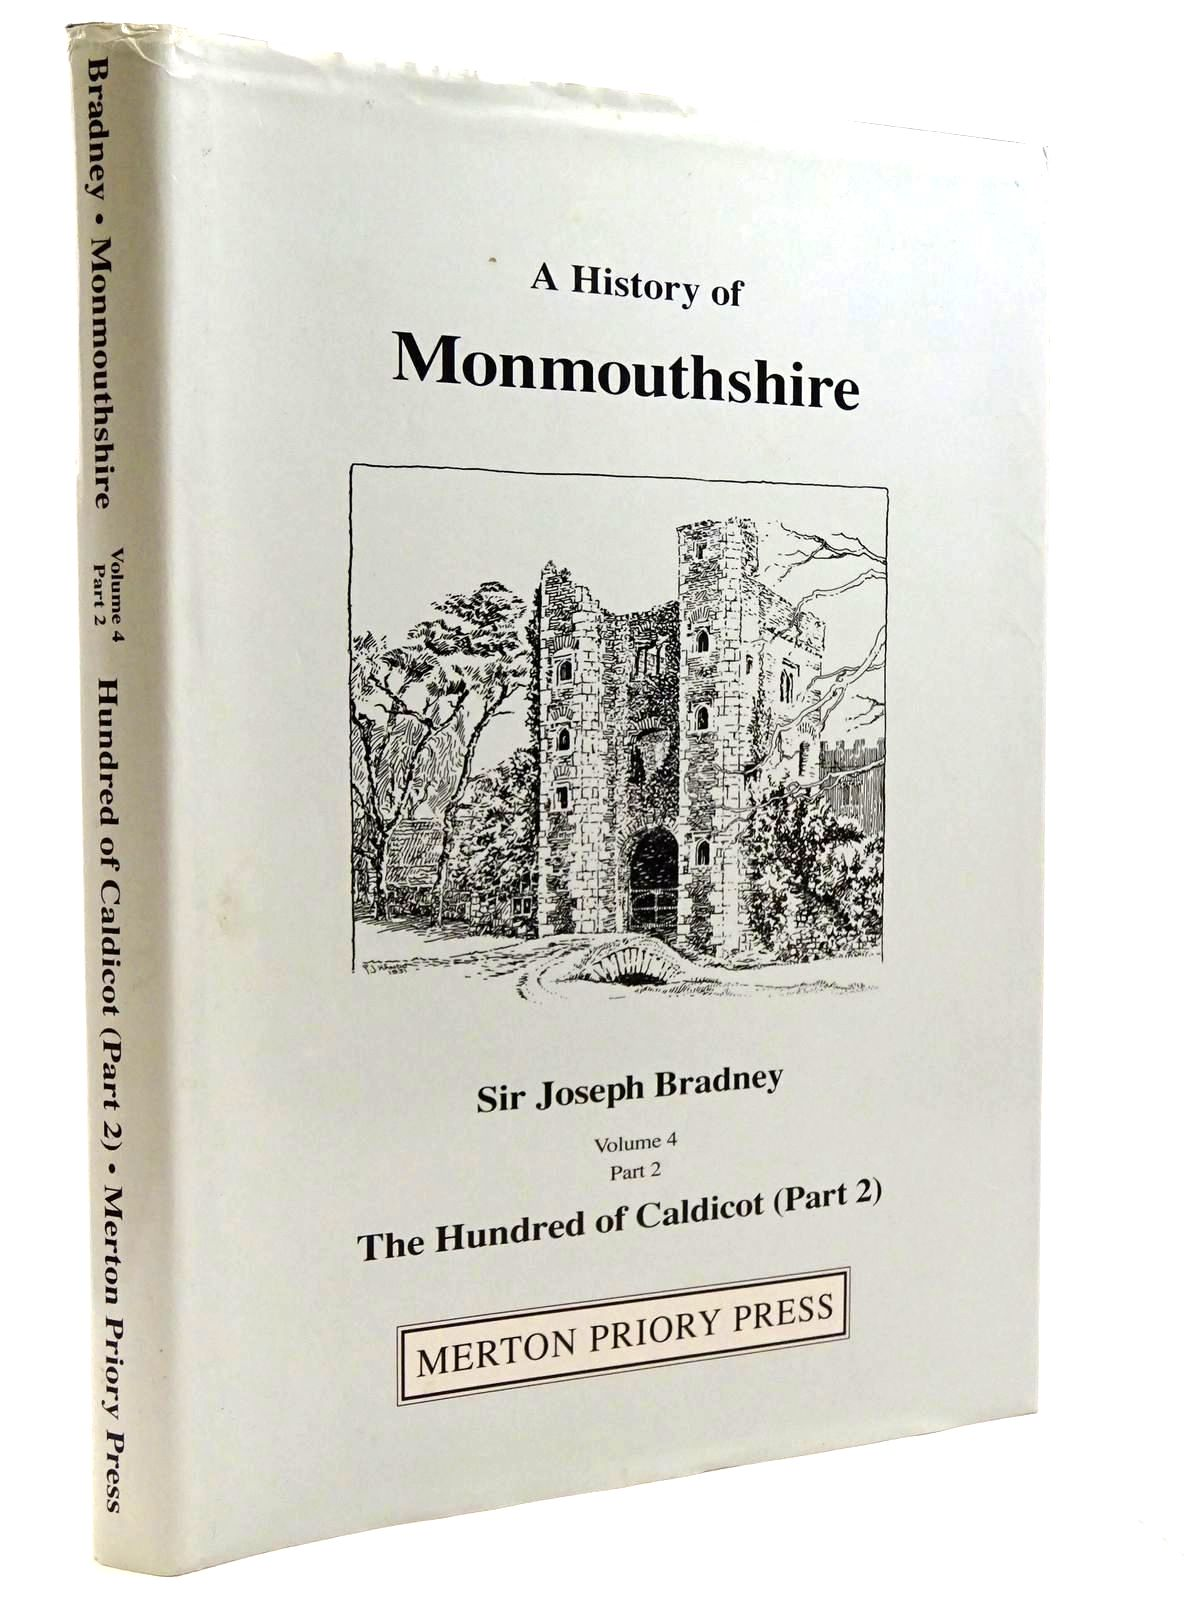 Photo of A HISTORY OF MONMOUTHSHIRE THE HUNDRED OF CALDICOT PART 2 written by Bradney, Joseph published by Merton Priory Press (STOCK CODE: 2131284)  for sale by Stella & Rose's Books